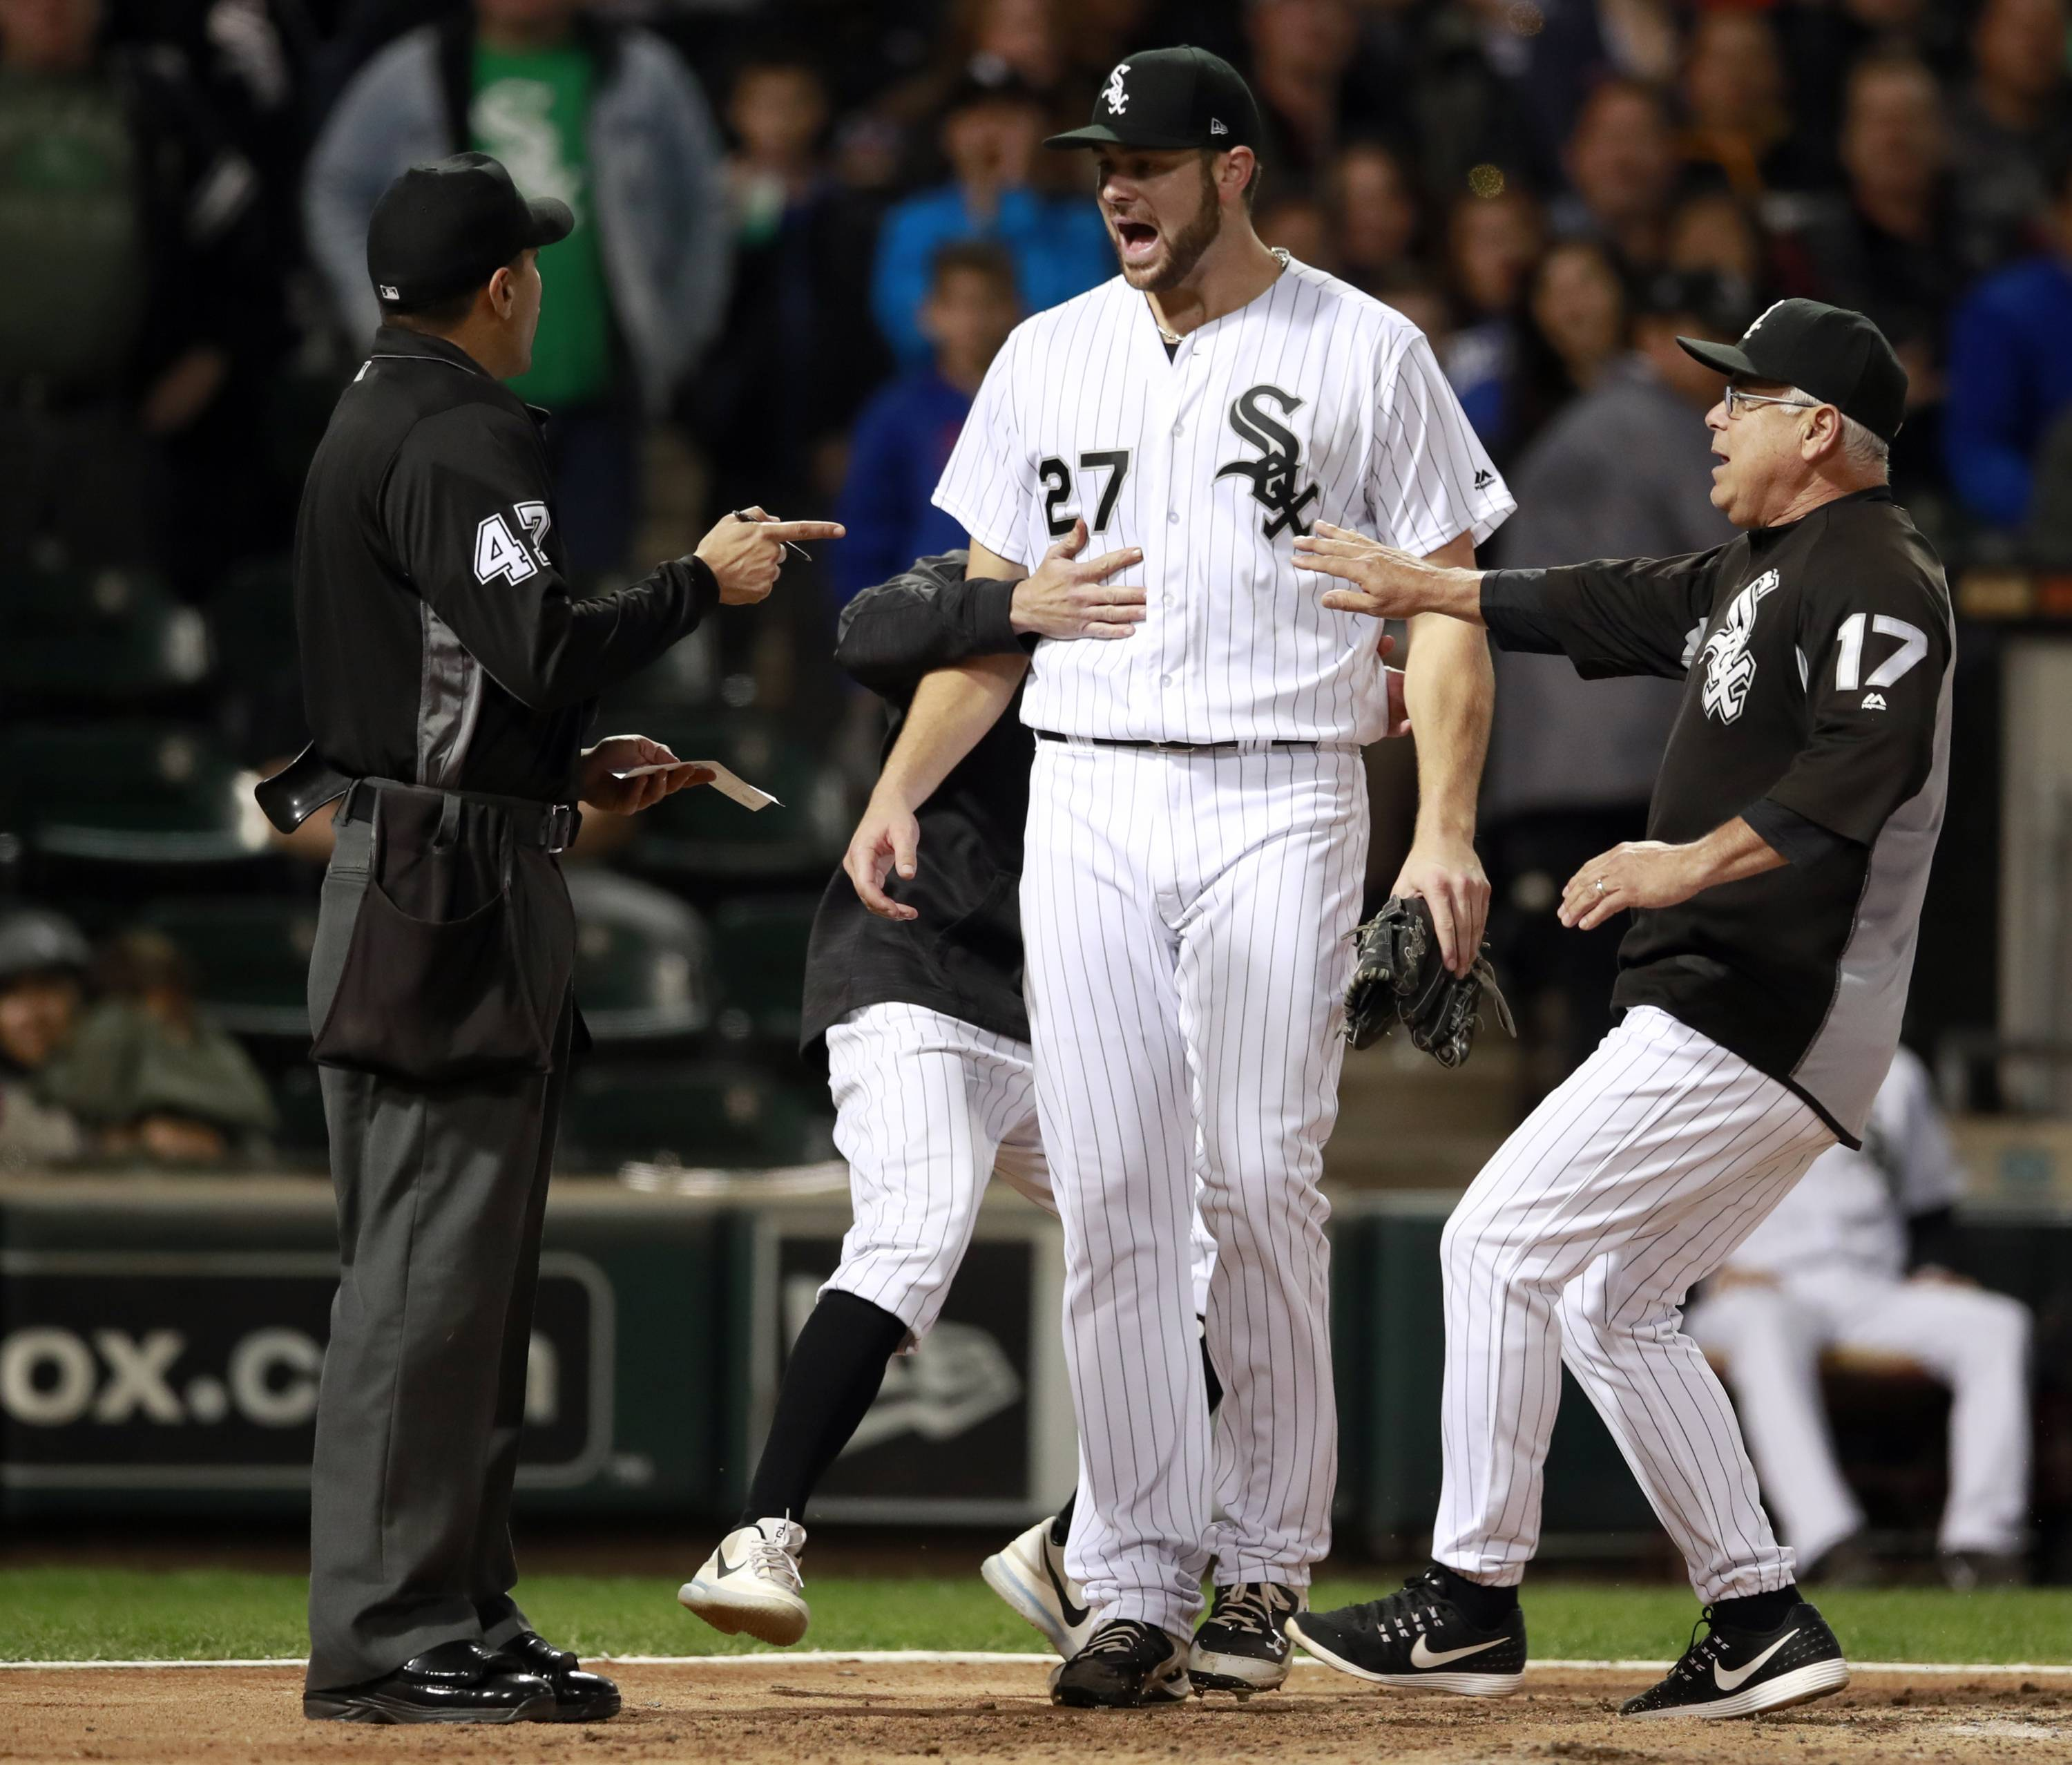 White Sox starting pitcher Lucas Giolito (27) argues with umpire Gabe Morales (47) as manager Rick Renteria (17) holds him back after being thrown out of a baseball game by Morales during the sixth inning against the San Francisco Giants in Chicago, on Friday, It was a tough night for the White Sox, who lost to the San Francisco Giants 9-2 Friday at Guaranteed Rate Field.